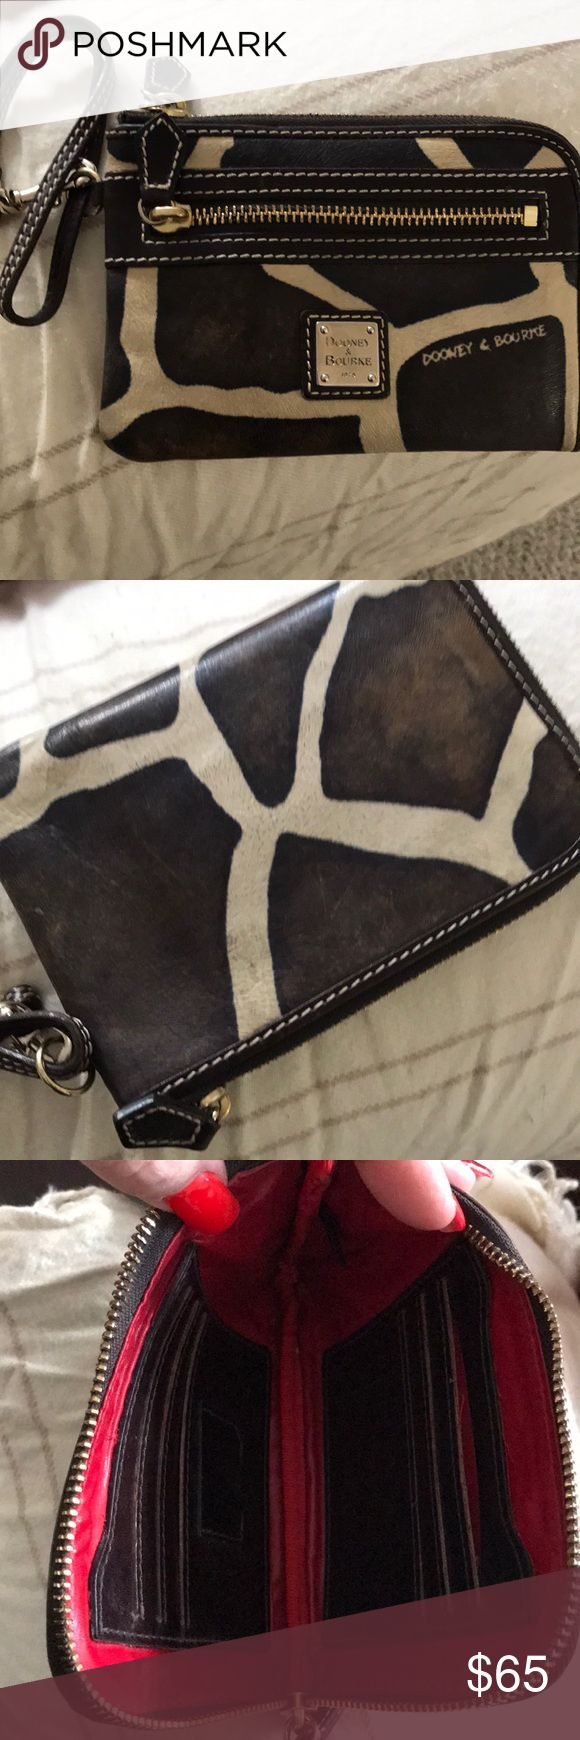 Dooney & Bourke Authentic wallet Authentic Dooney &Bourke wallet with a strap wristlet. In great condition and it matches the bag that is listed for $99. Bundle it together and I can do 20% off on both. Vintage pieces, elegant and practical! Dooney & Bourke Bags Wallets